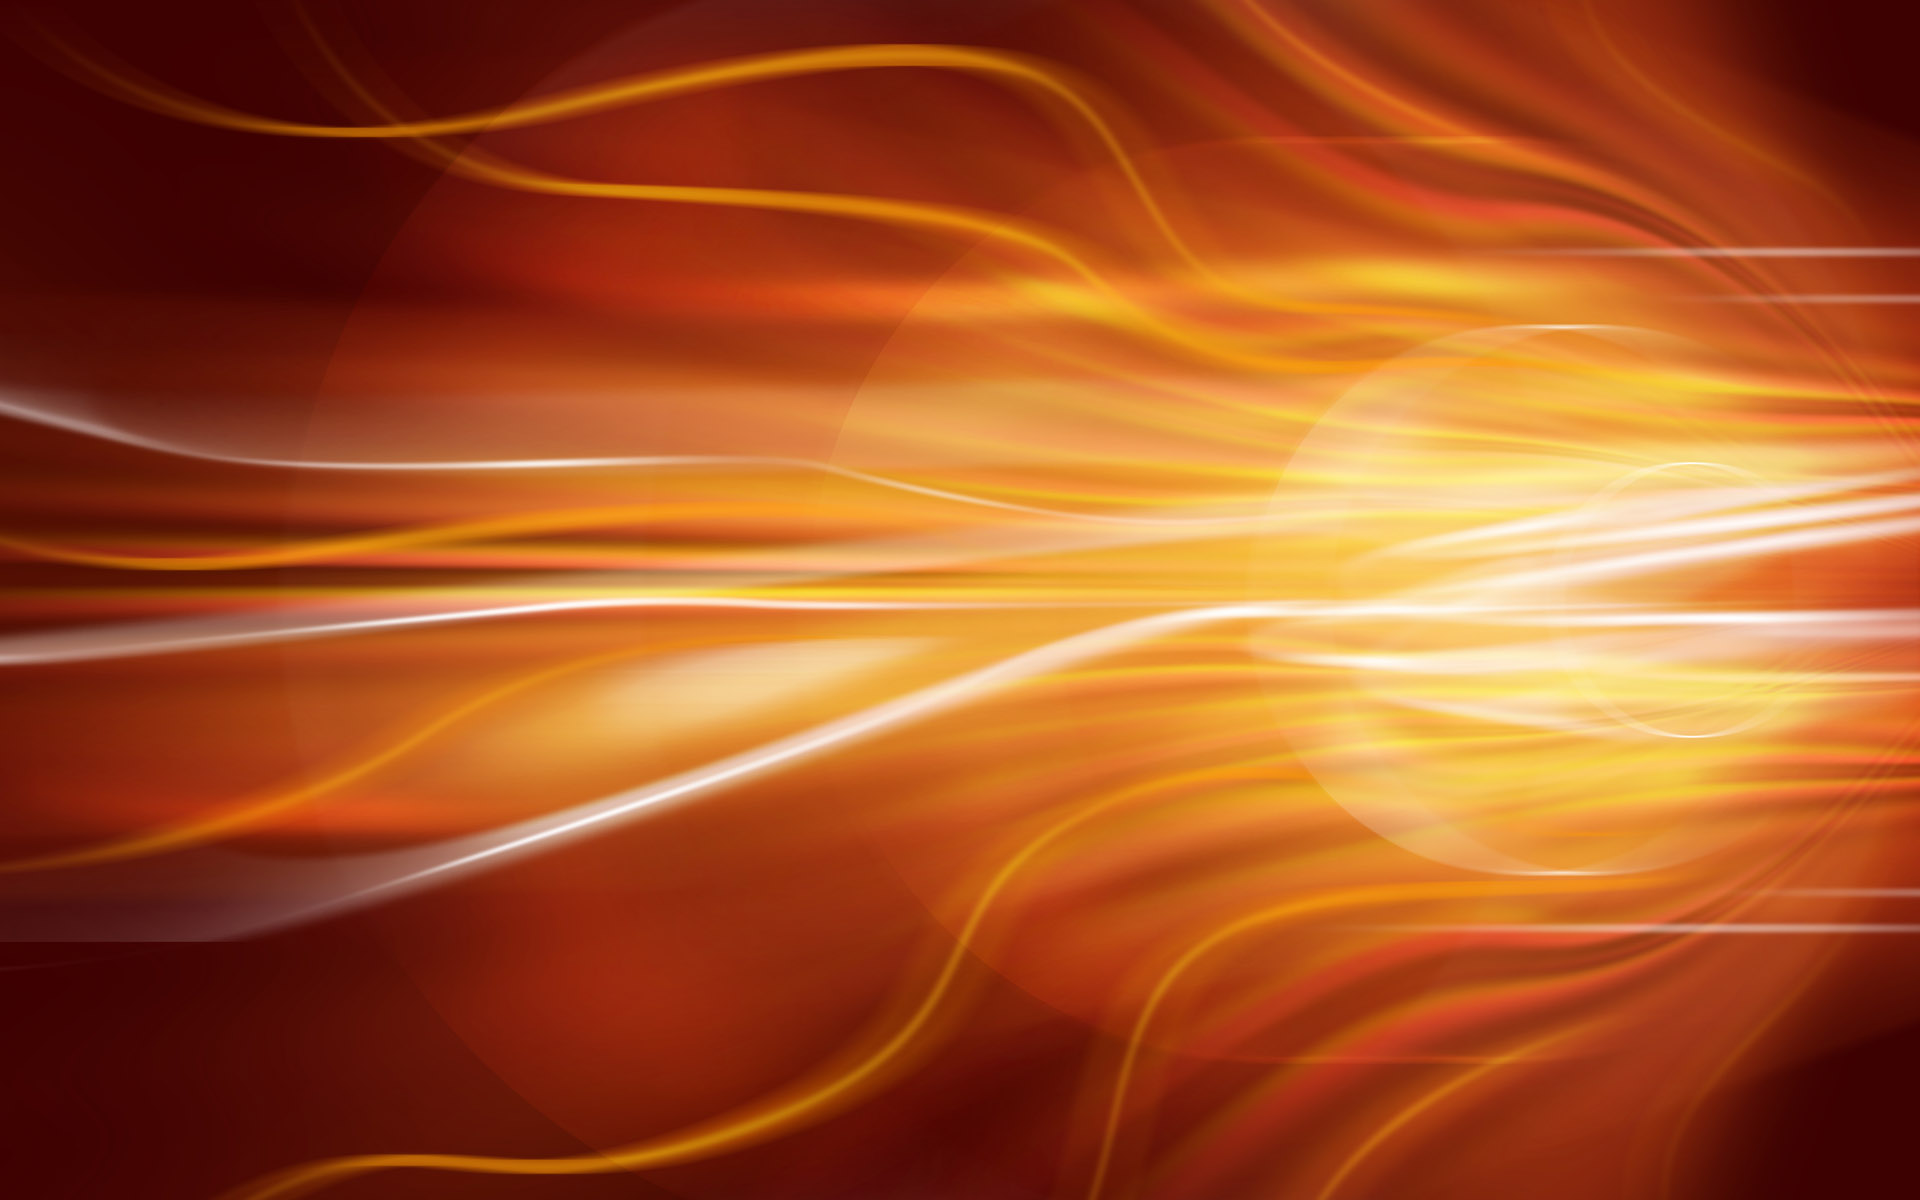 abstract sun orange rays desktop 19201200 wanted wallpaper 1 1920x1200